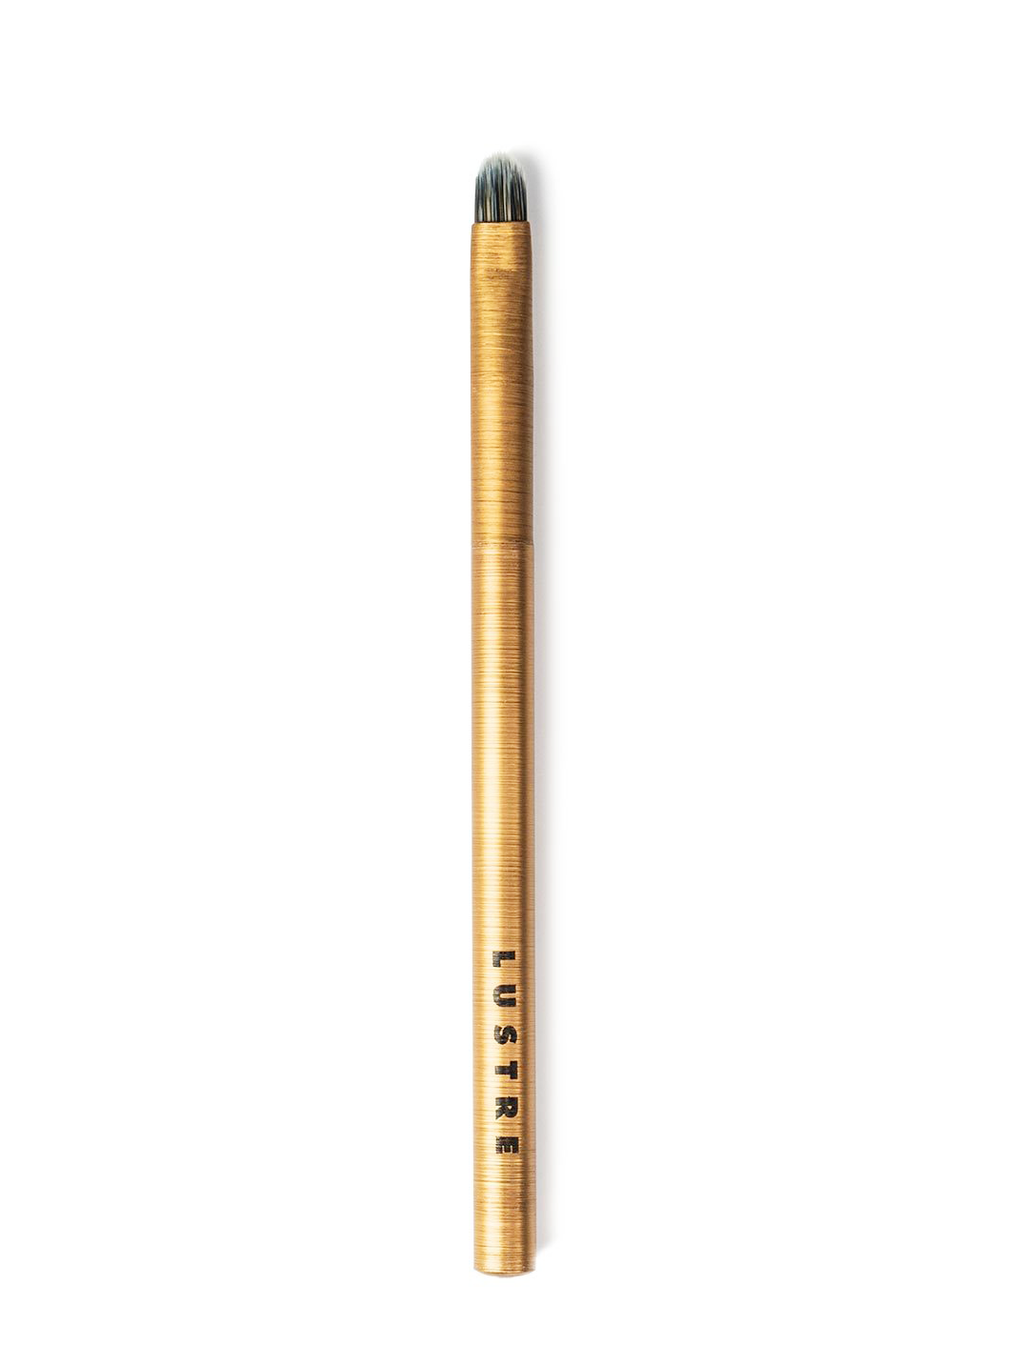 Lustre Pro Makeup Brush E104 Lip Brush